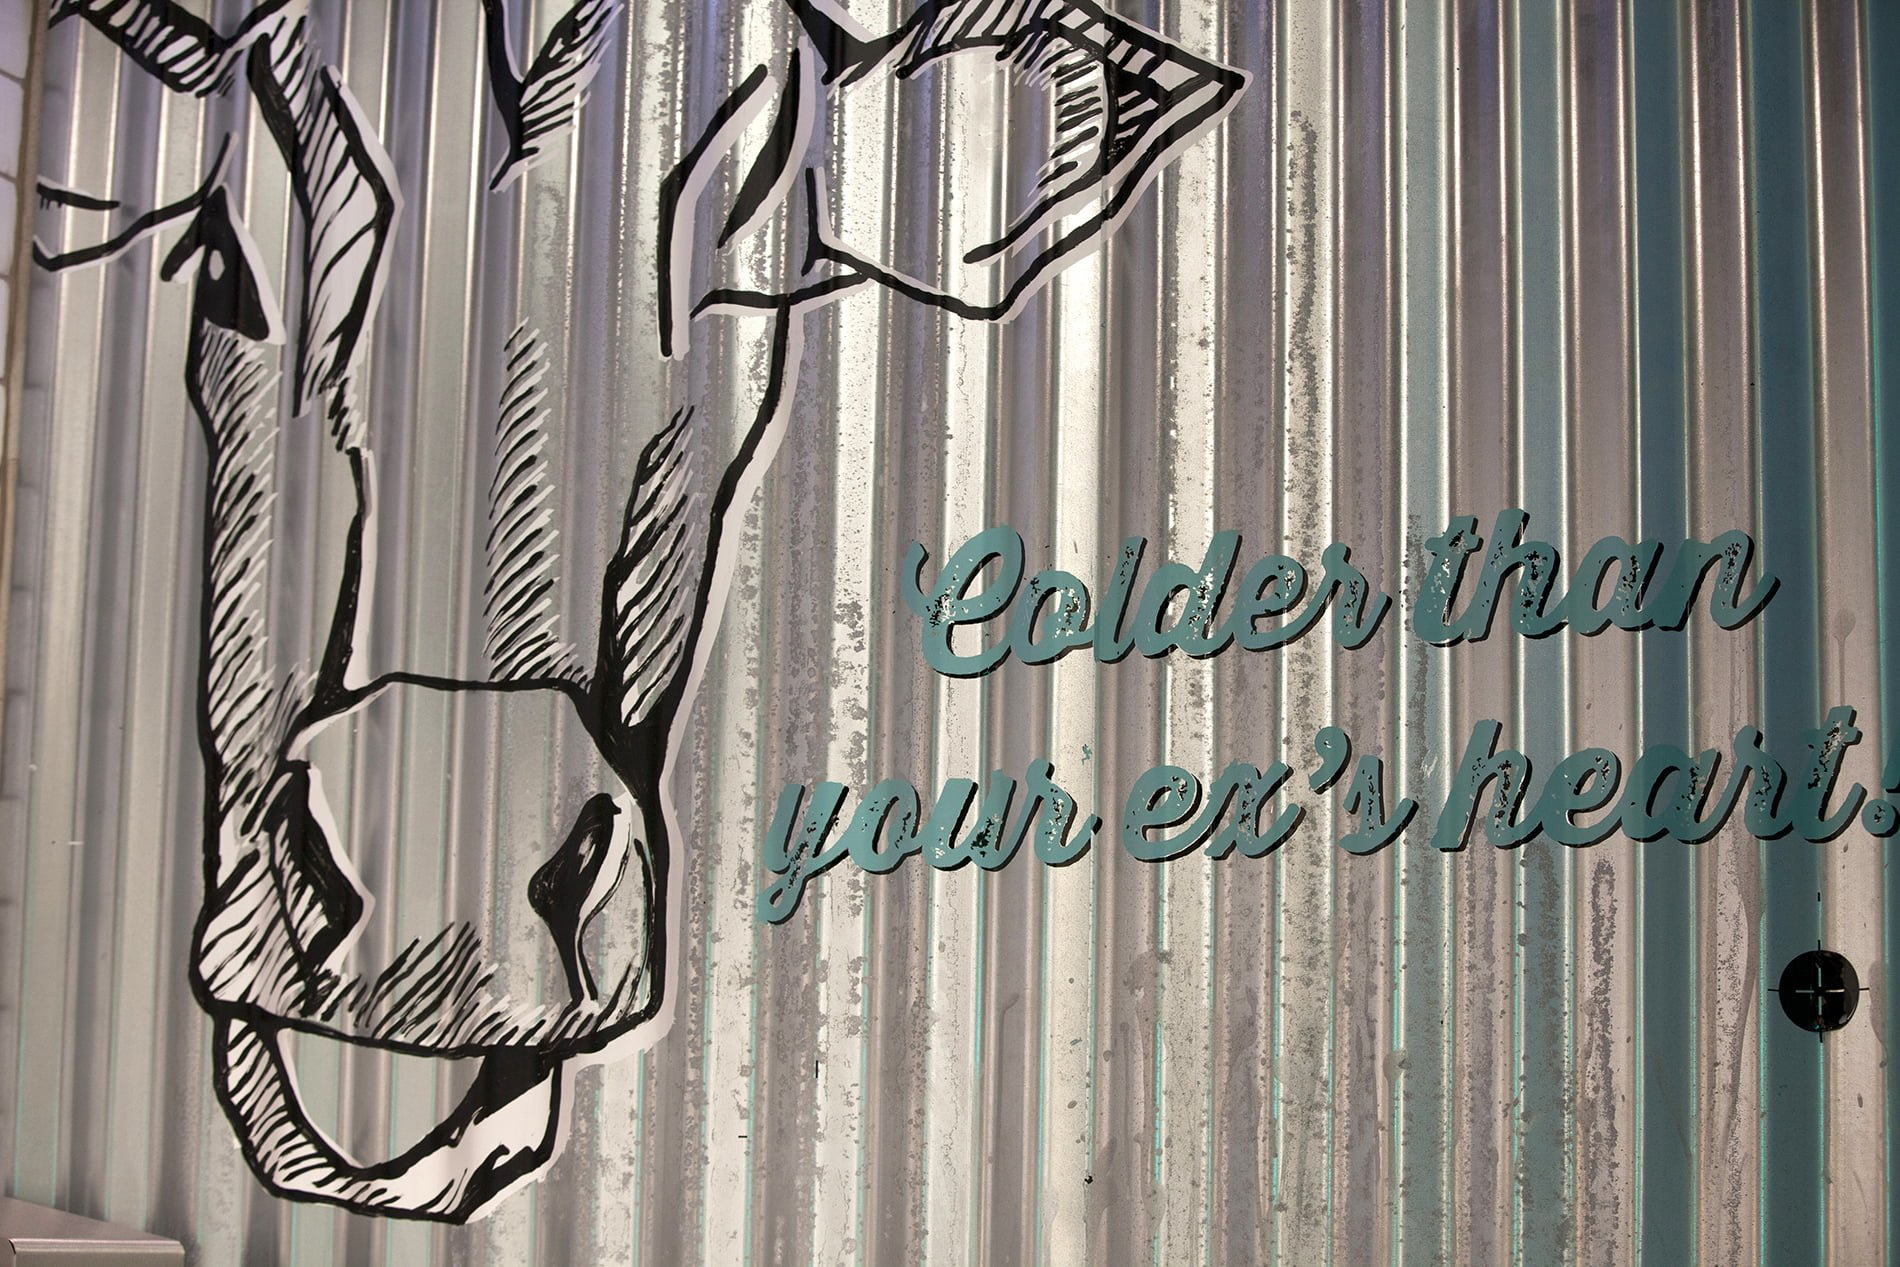 Corrugated metal with cow graphic and slogan 'colder than your ex's heart'